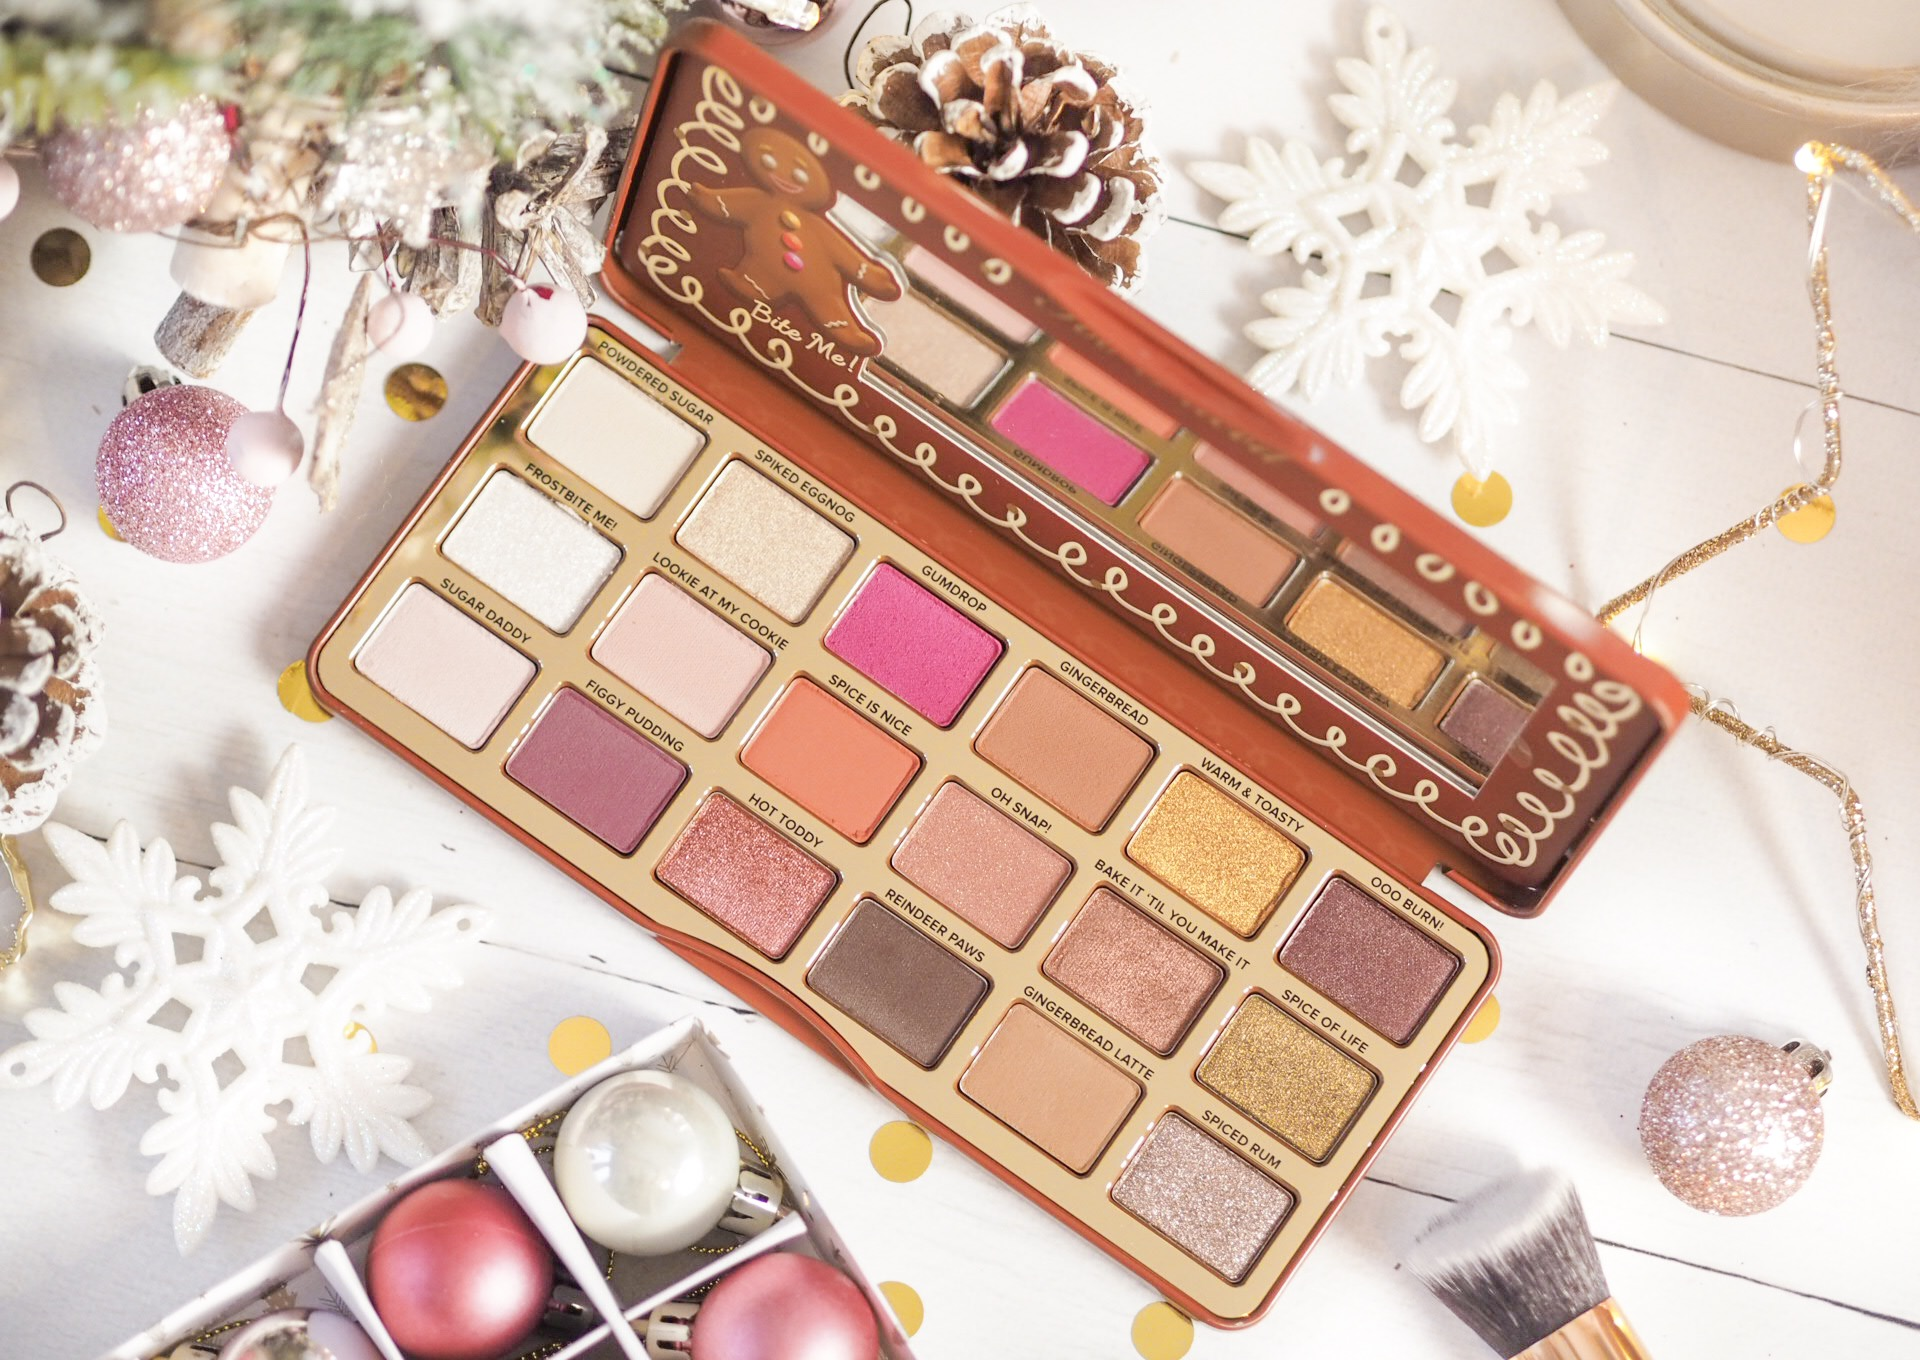 Too Faced Gingerbread Eyeshadow Palette Review